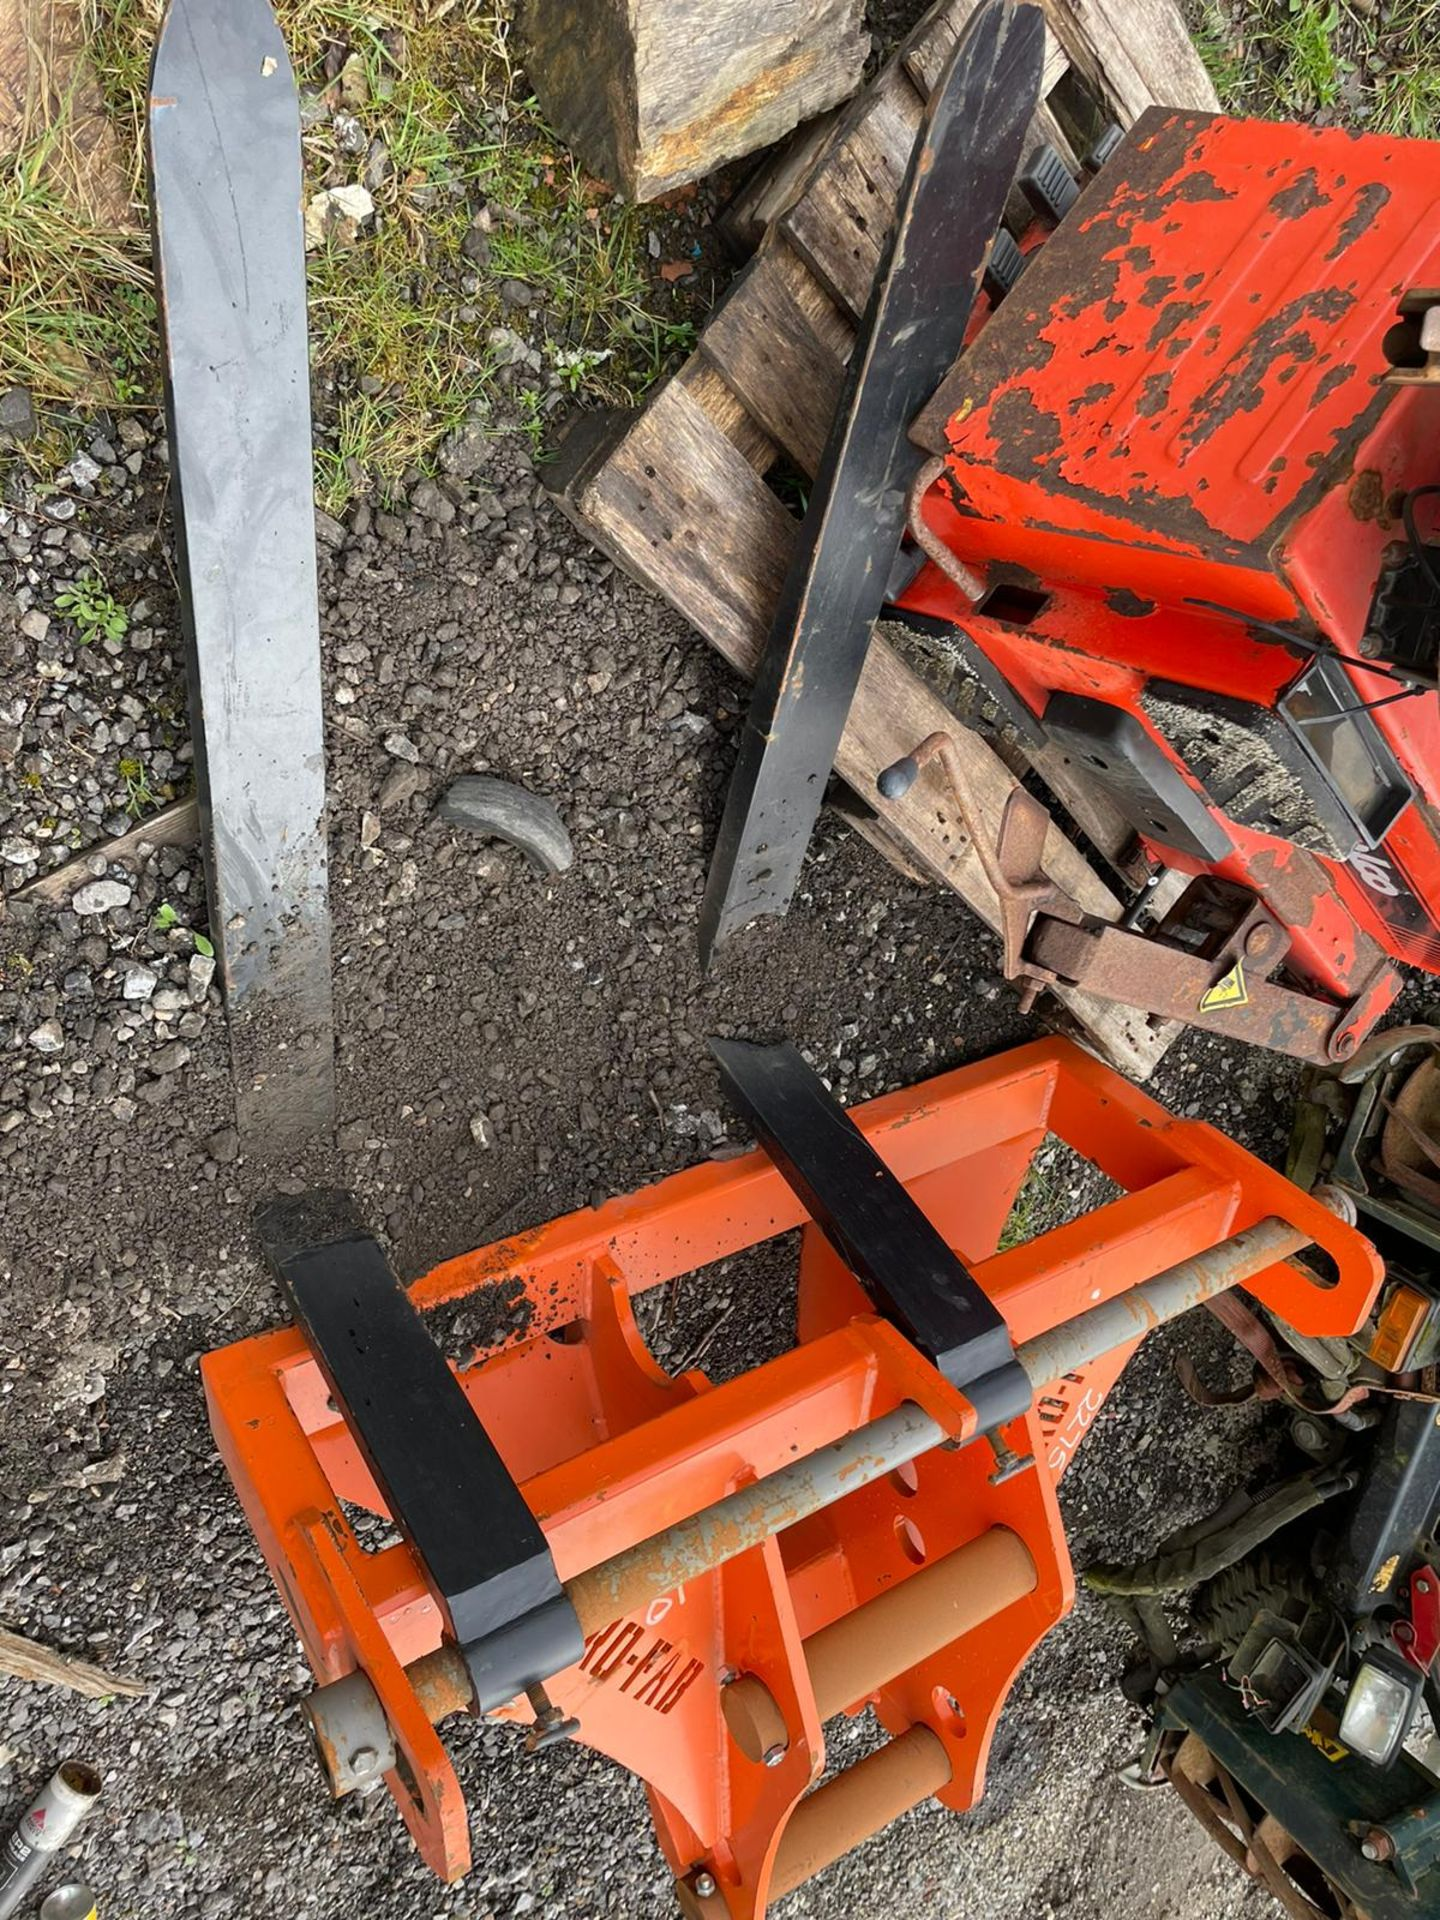 EURO-FAB PALLET FORKS, BRAND NEW AND UNUSED, SUITABLE FOR EXCAVATOR, 80MM PINS, PLUS VAT - Image 2 of 3